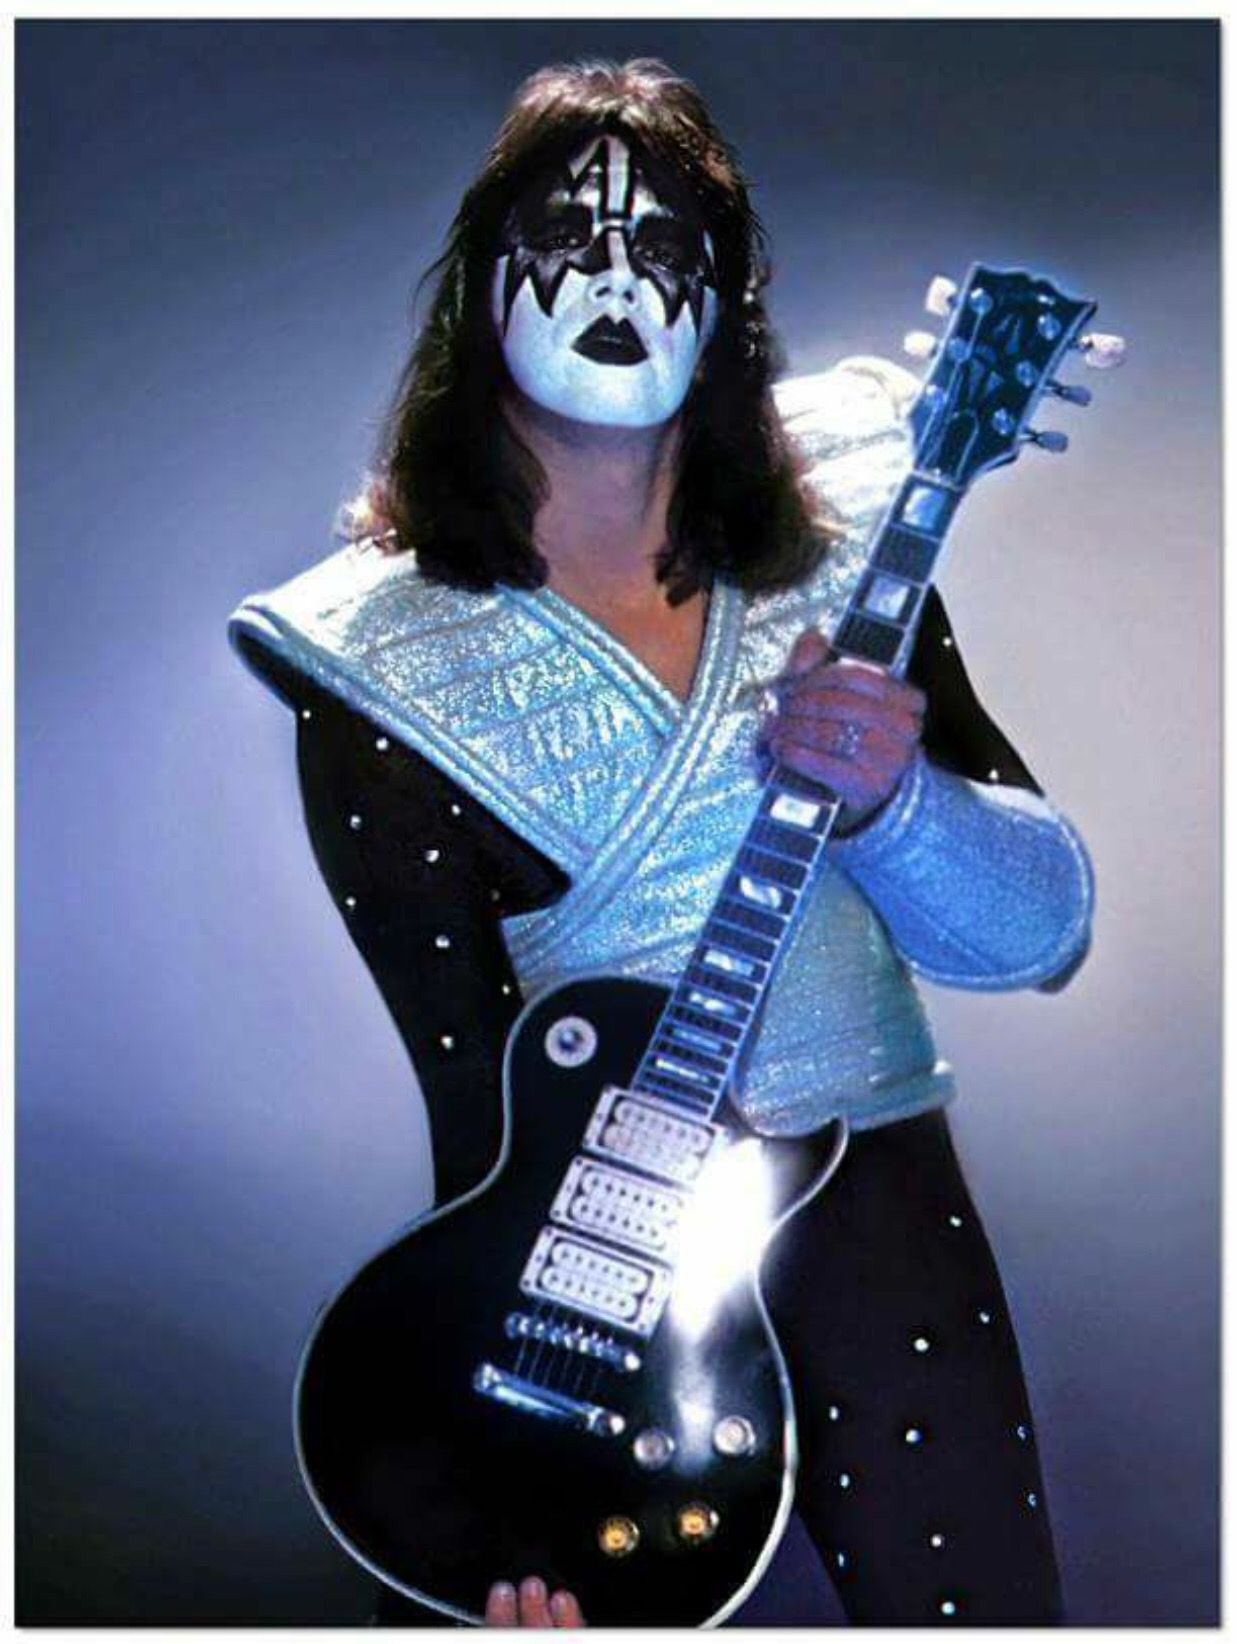 pin by edgar bond on ace ace frehley kiss band kiss members. Black Bedroom Furniture Sets. Home Design Ideas